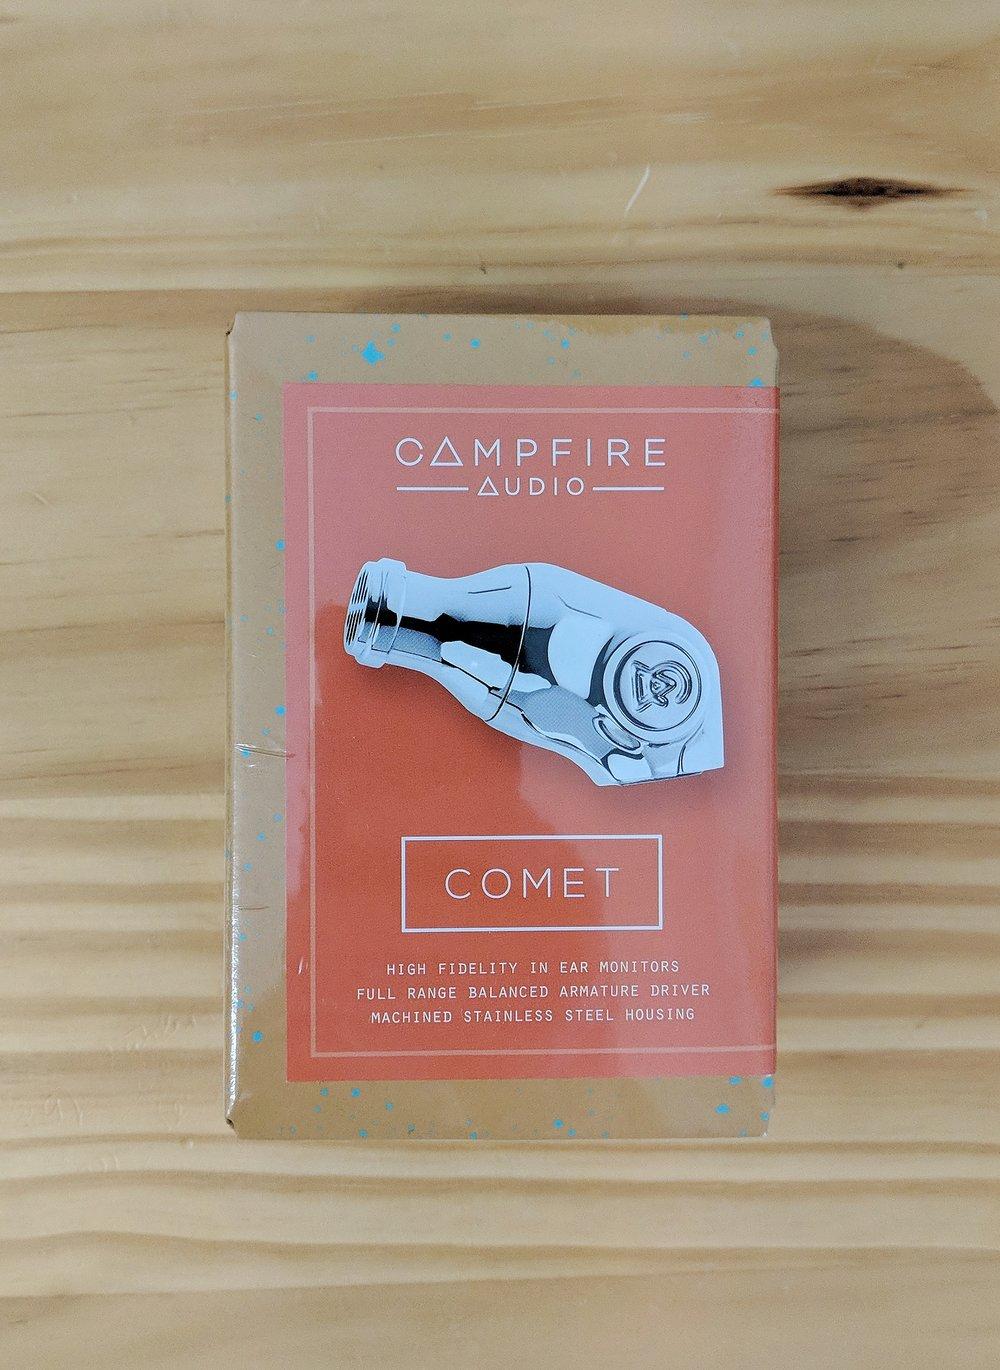 Box for the Campfire Audio Comet.